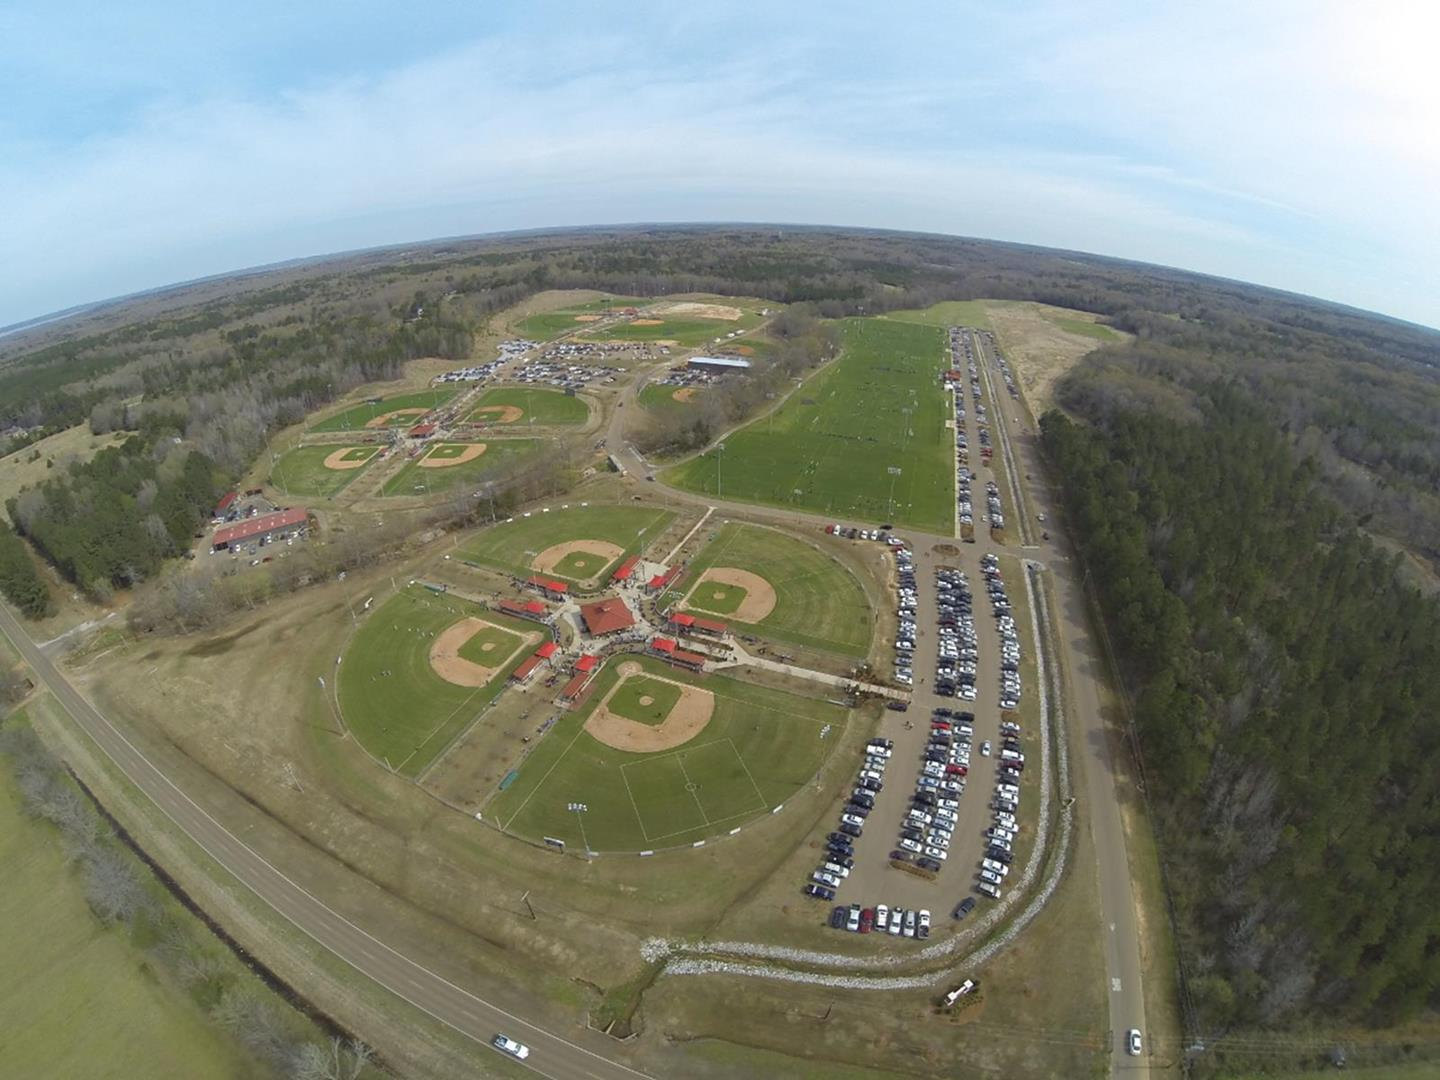 FNC Park: A Southern Sports Spectacular